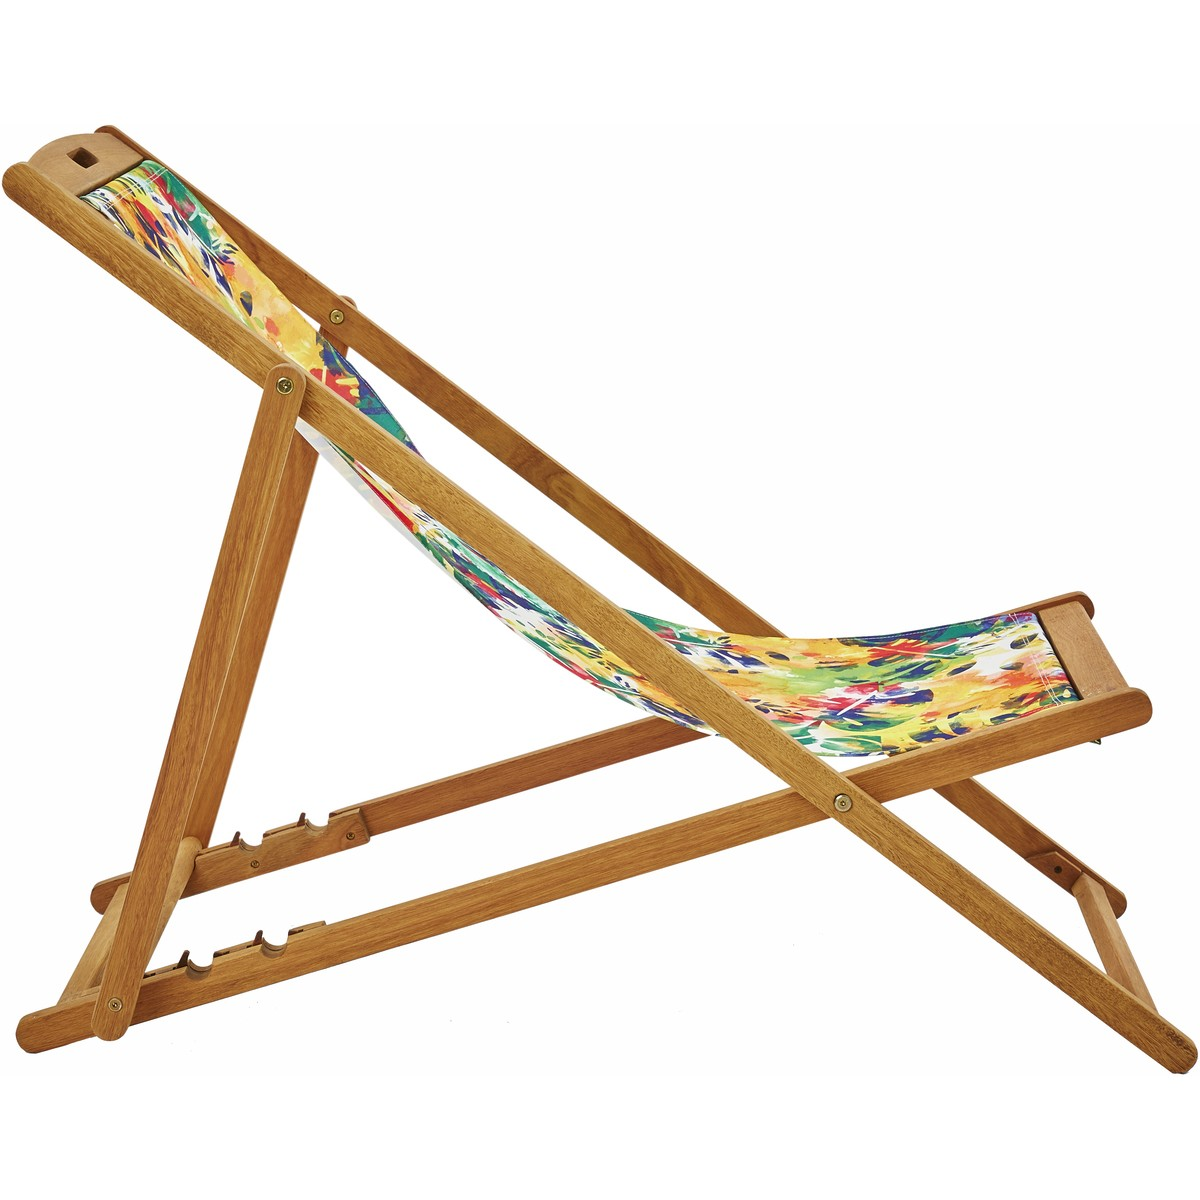 deck chair images lafuma lacing cords house home outdoor with wooden frame big w